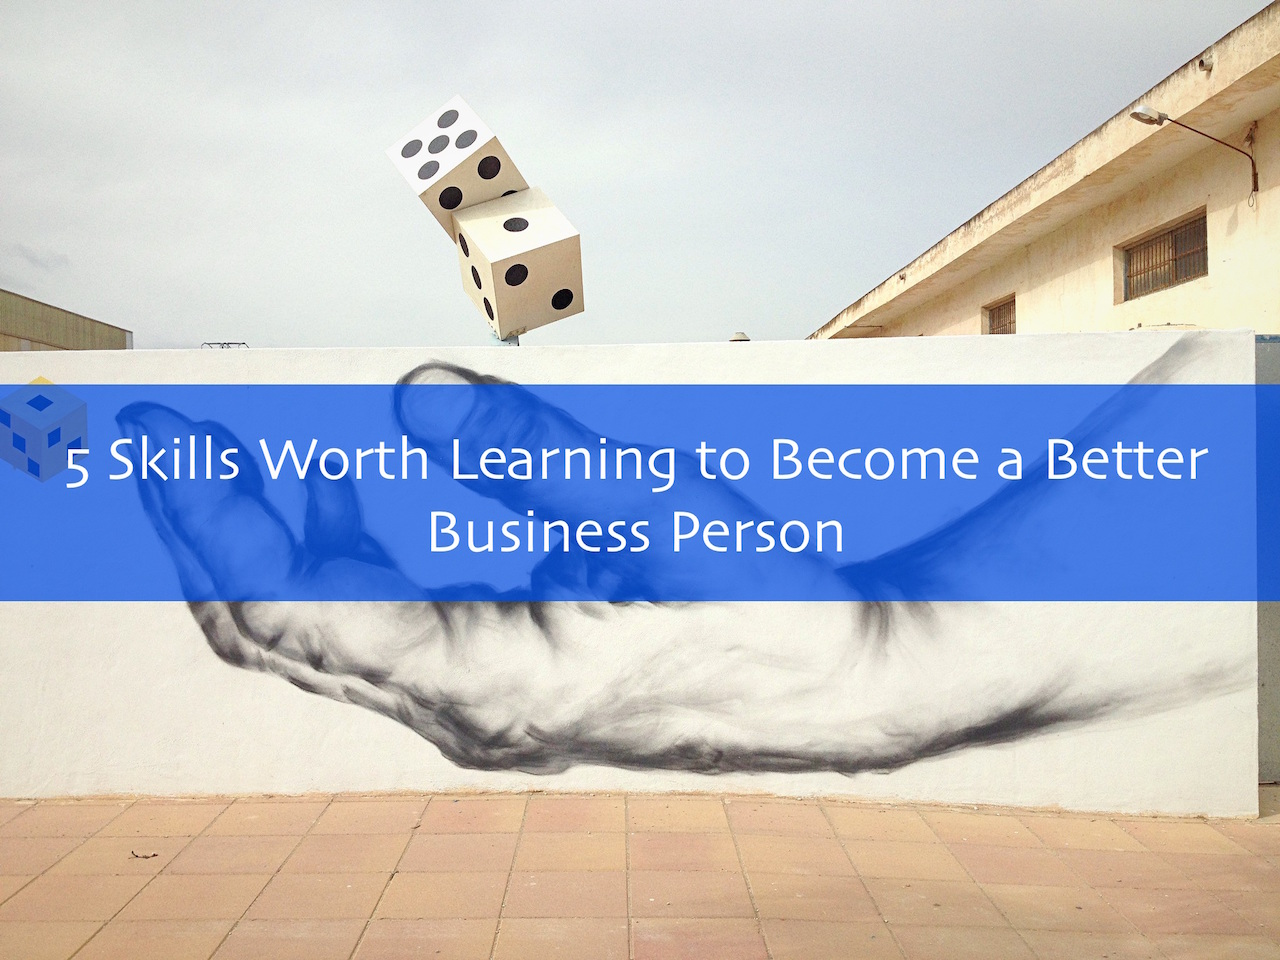 5 Skills Worth Learning to Become a Better Business Person